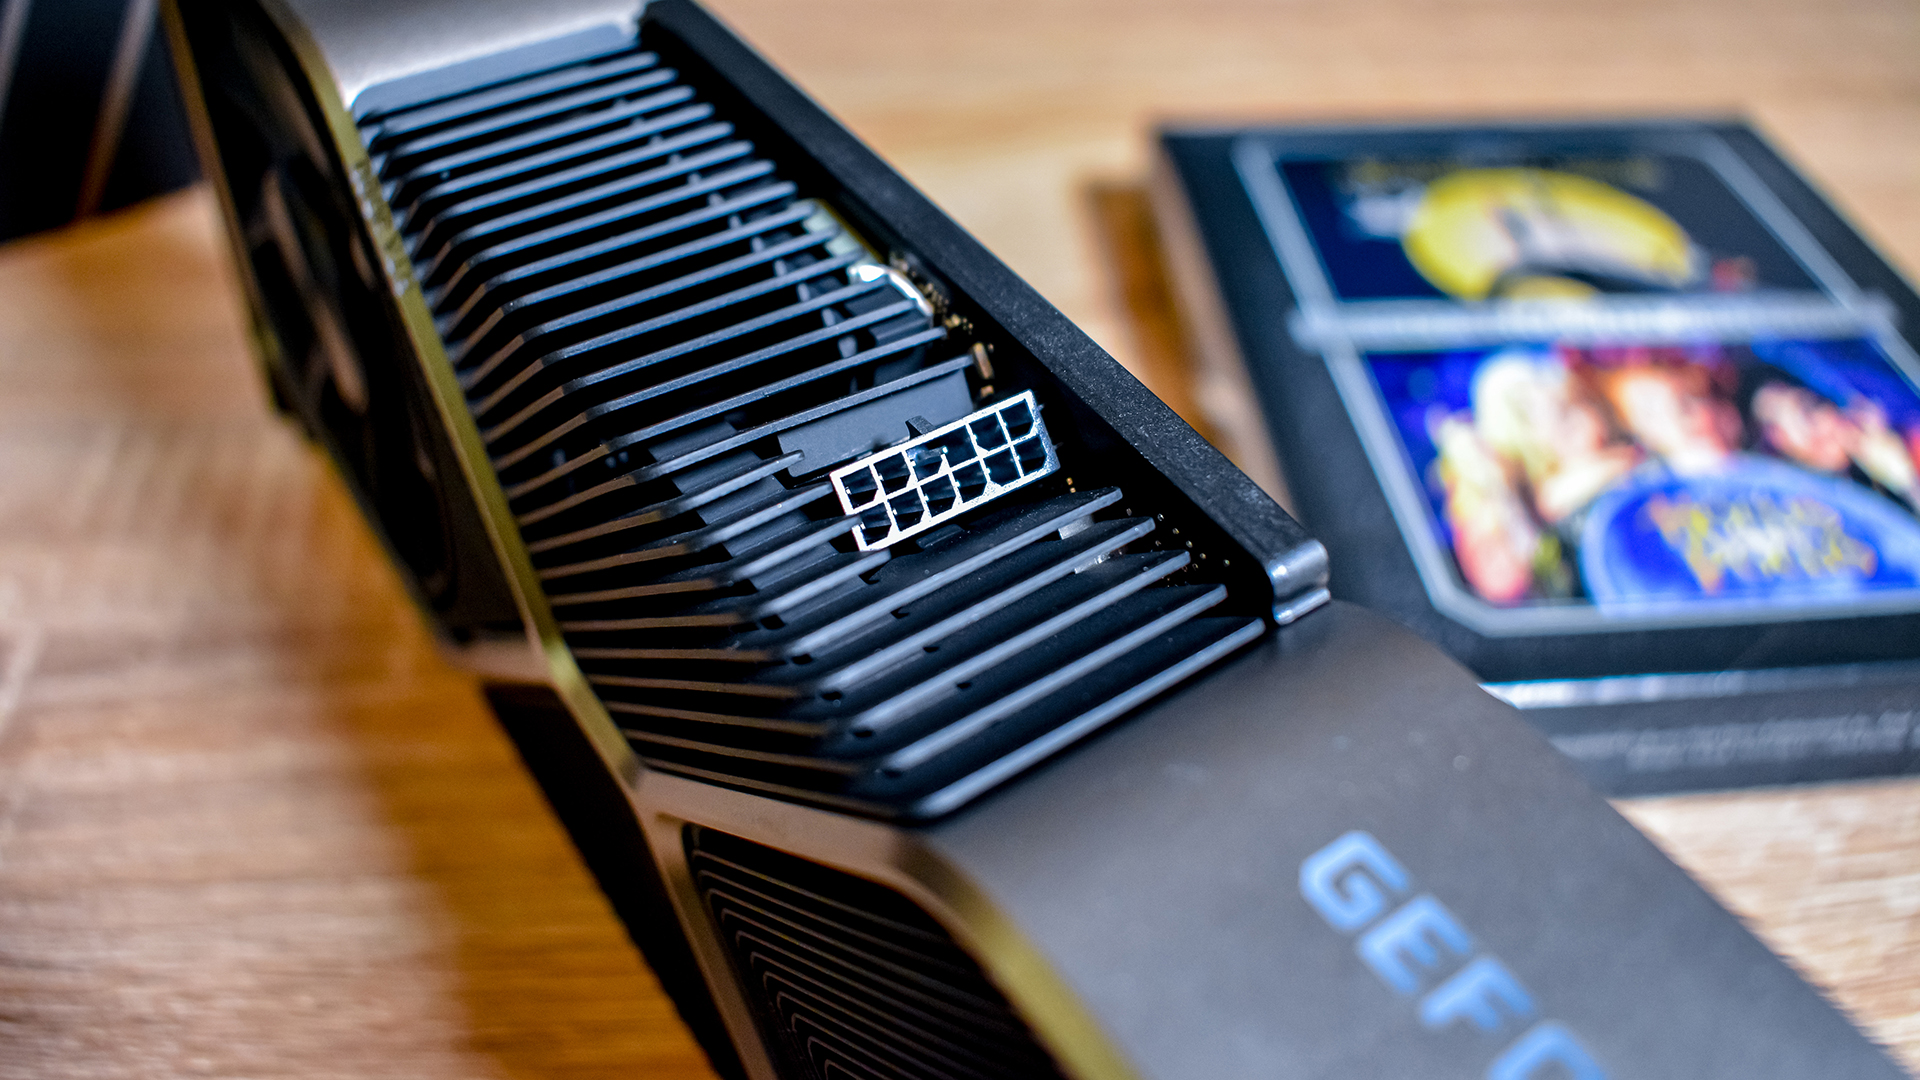 Nvidia GeForce RTX 3080 on a coffee table